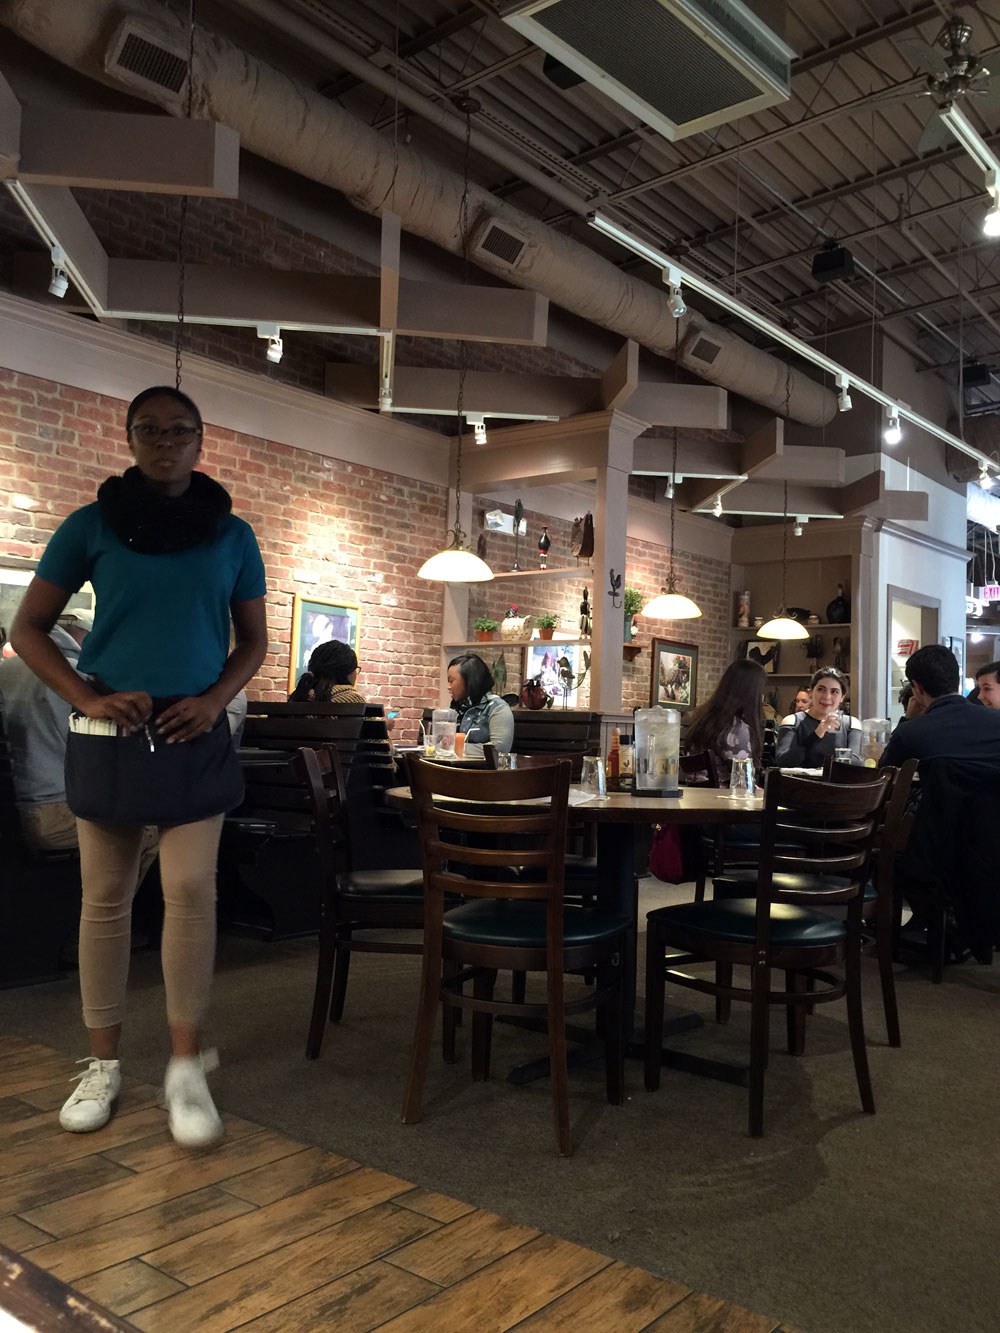 independent restaurant review: egg harbor cafe - sandy springs